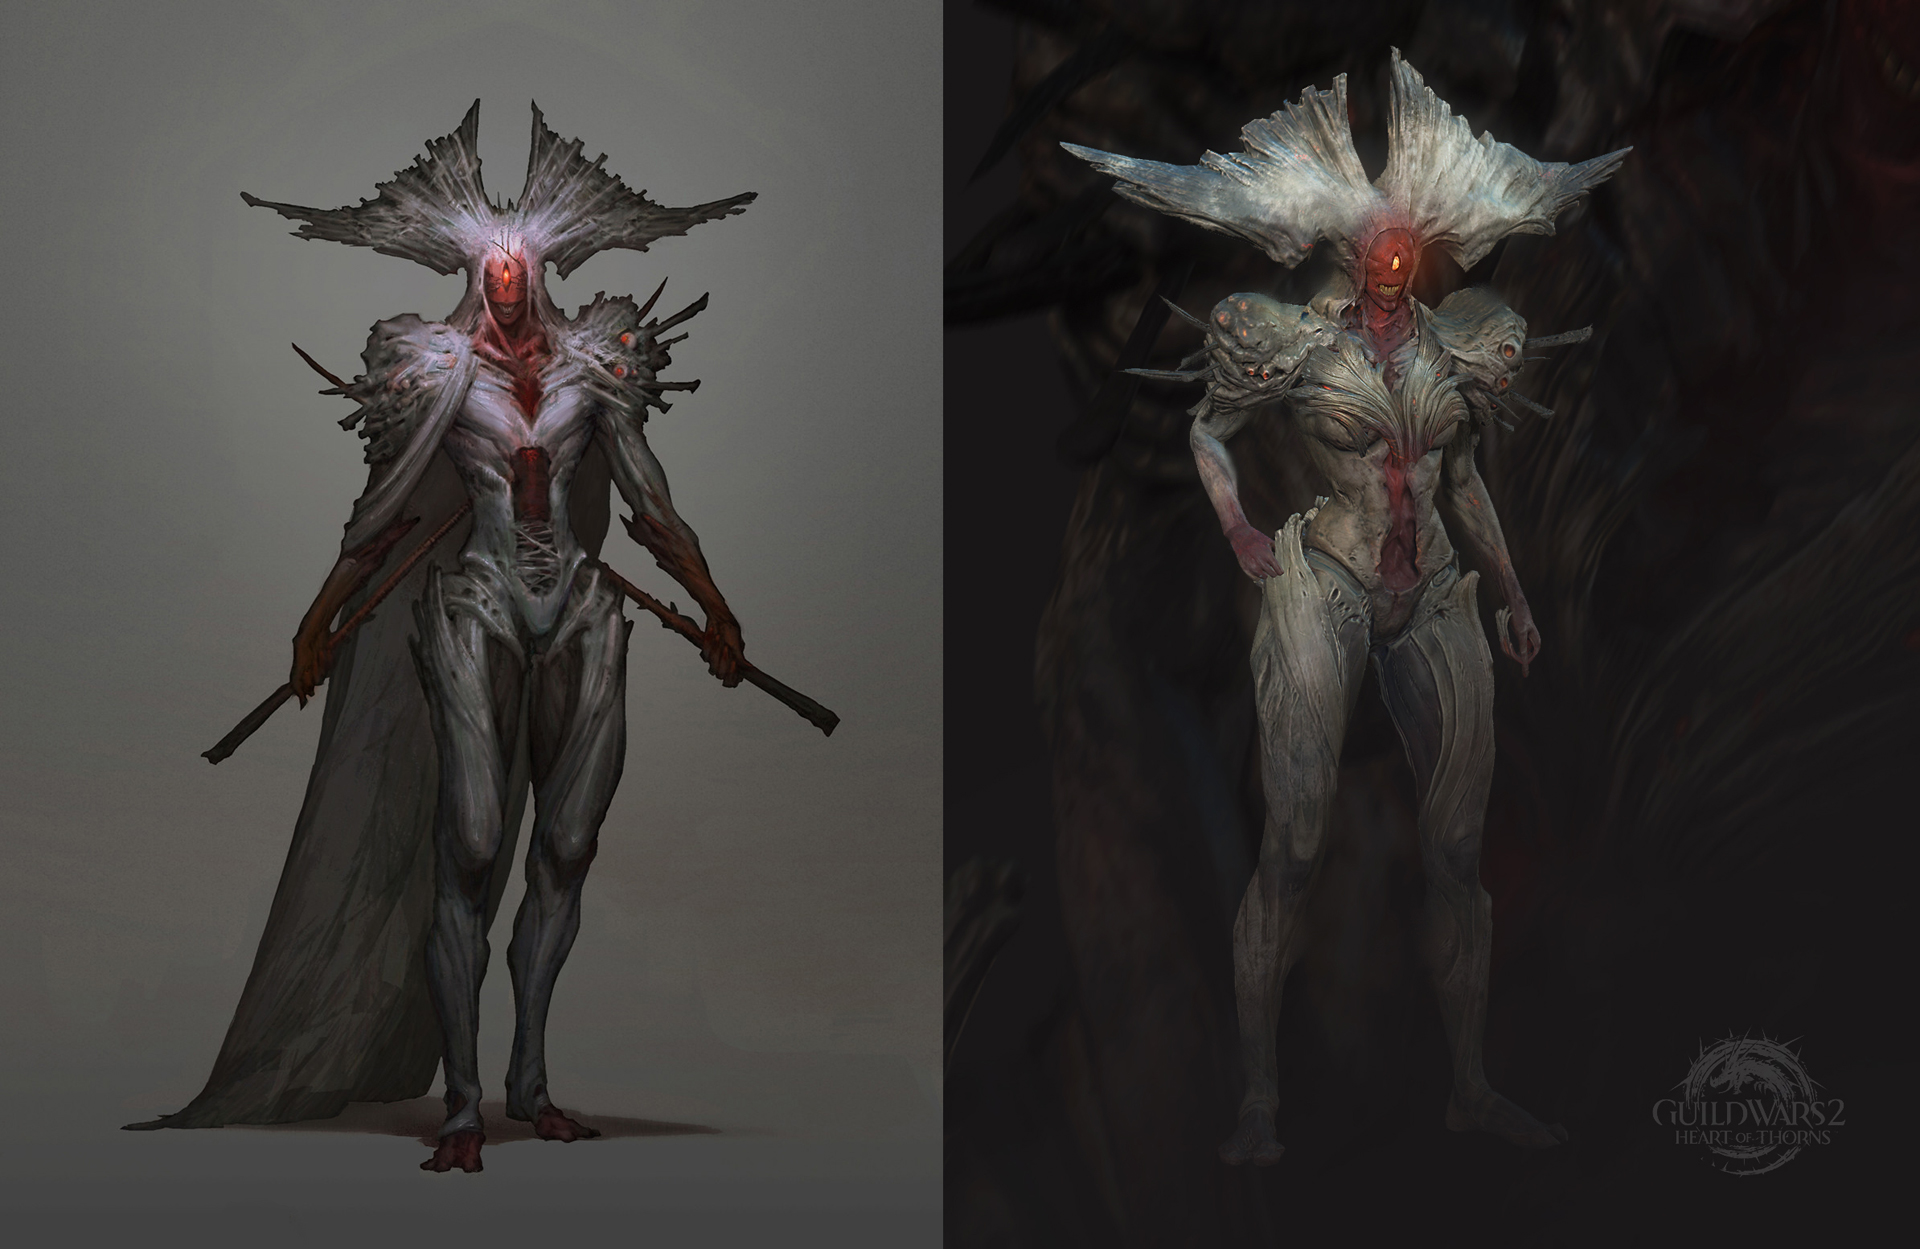 State of the Art: Guild Wars 2's art passes from father to son